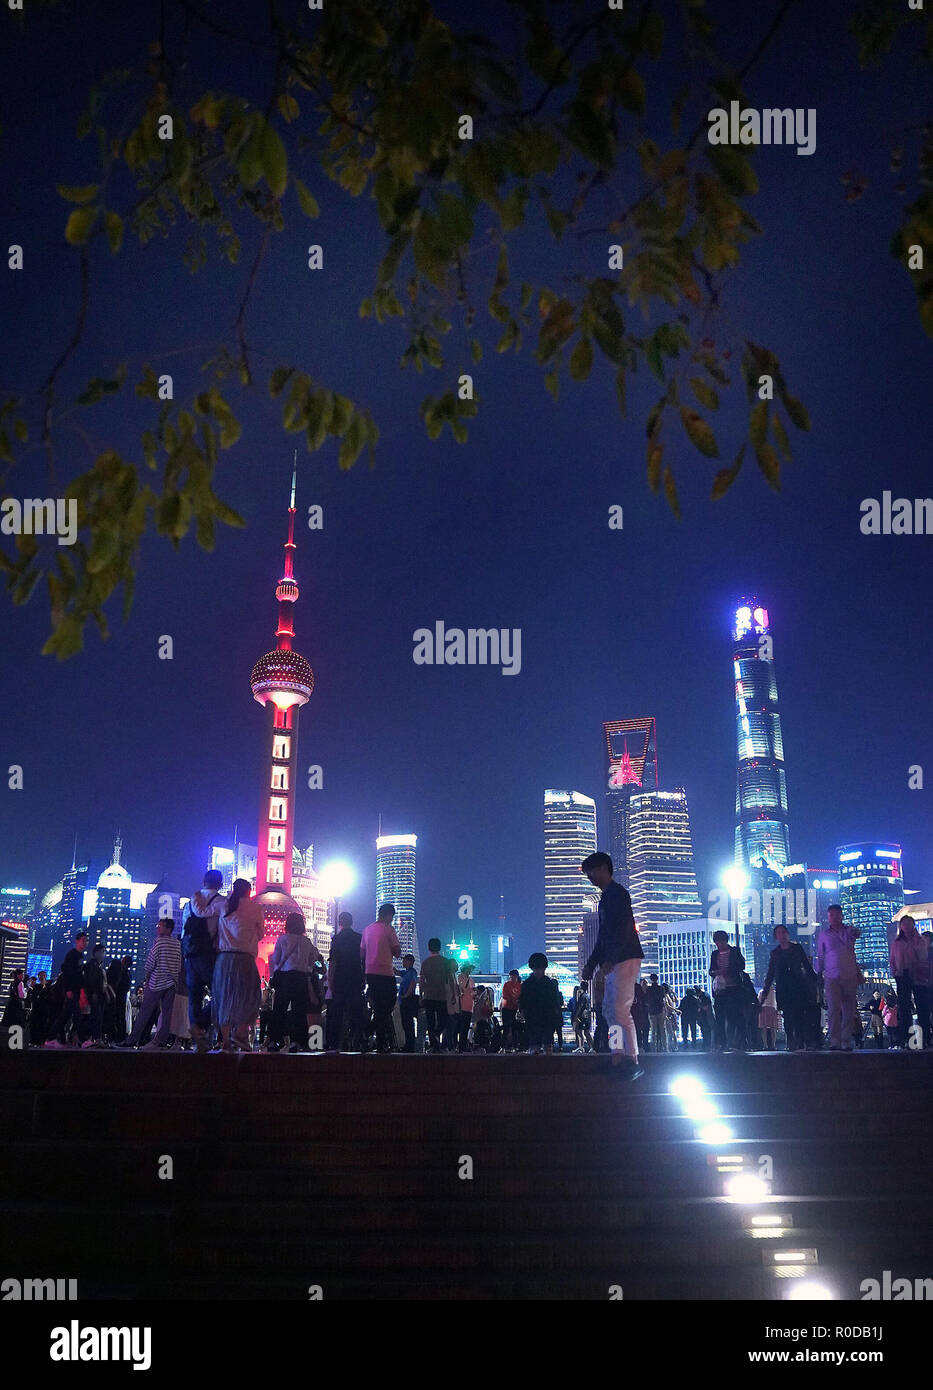 9f540a2b45a Tourists enjoy the night view of Shanghai, east China, Oct. 6, 2018. The  first China International Import Expo (CIIE) will be held on Nov. 5-10 in  Shanghai.